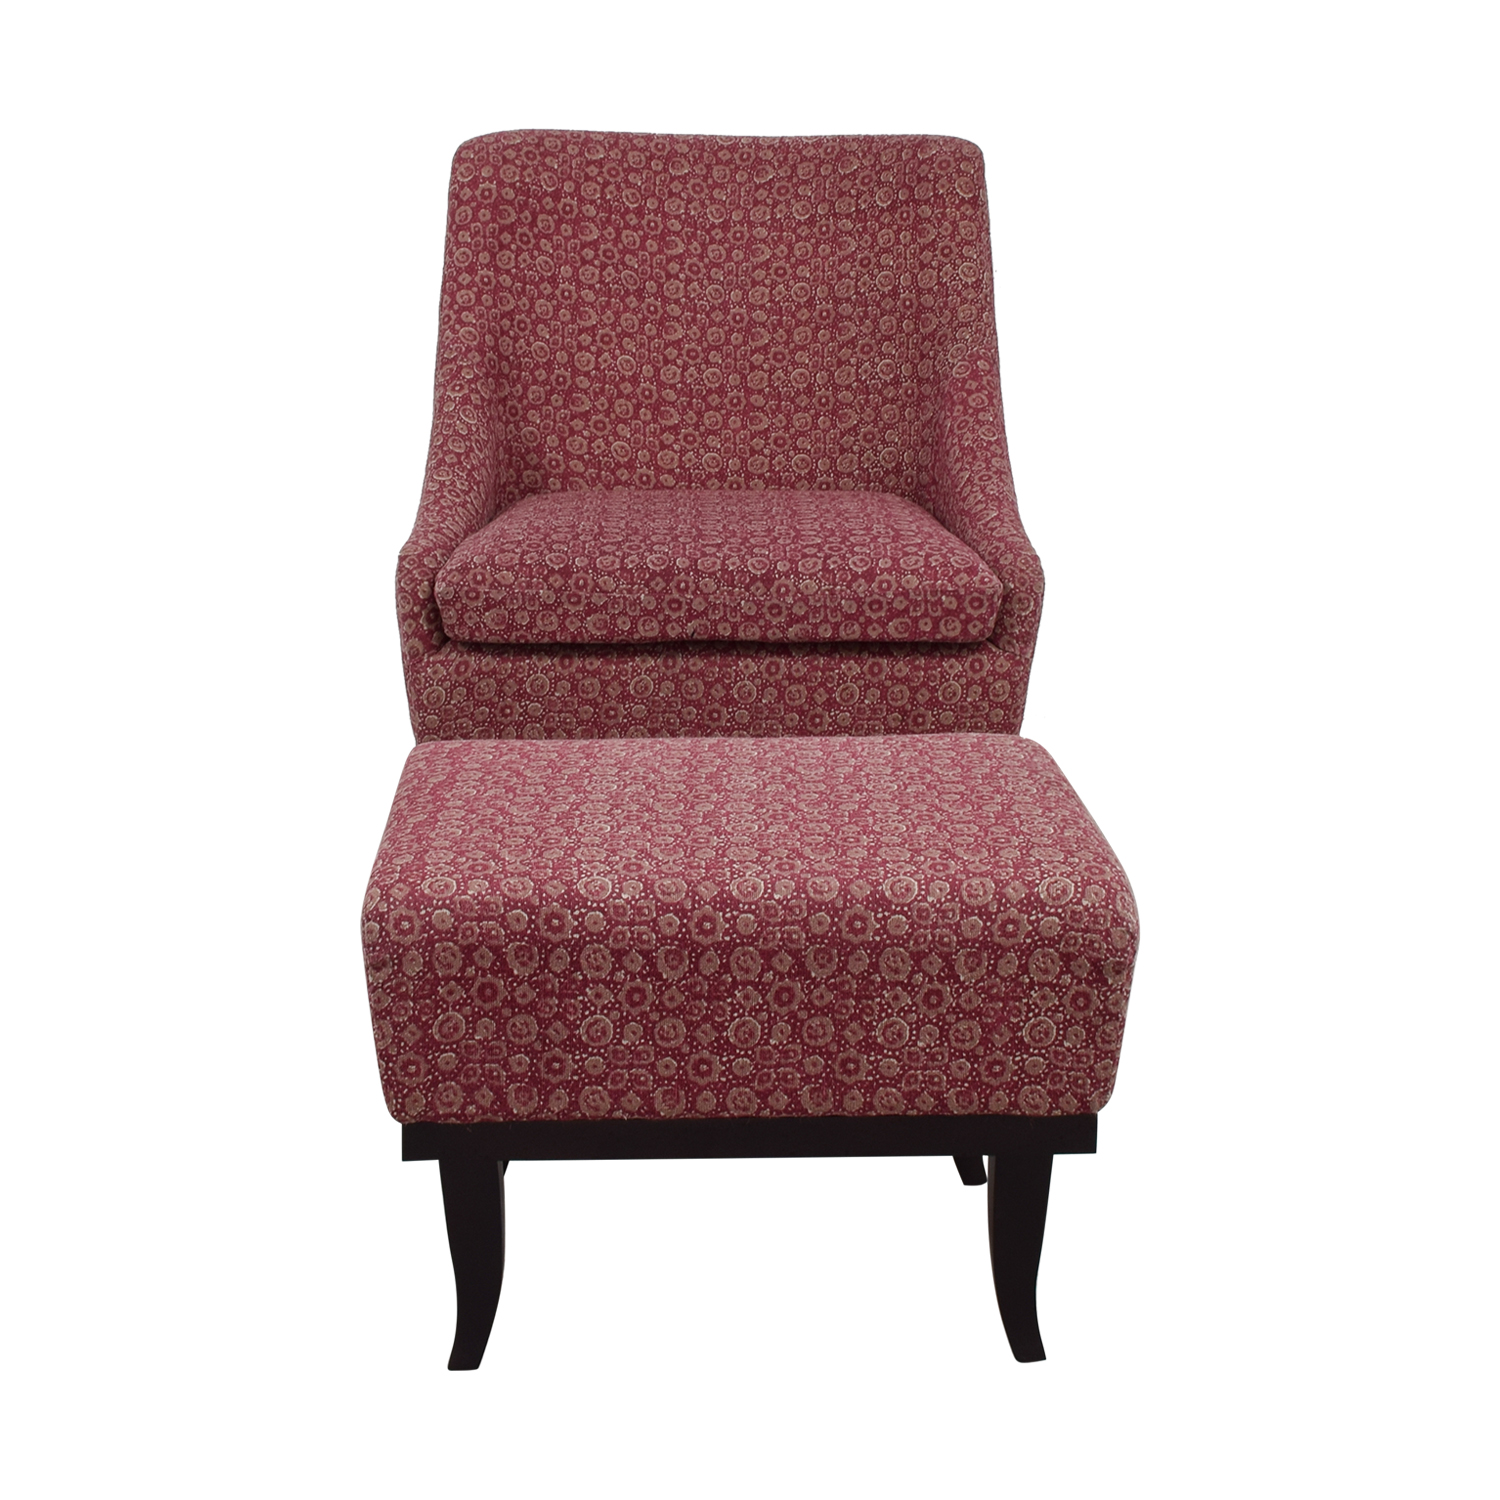 Manor and Mews Cary Burgundy Armchair with Footstool / Chairs